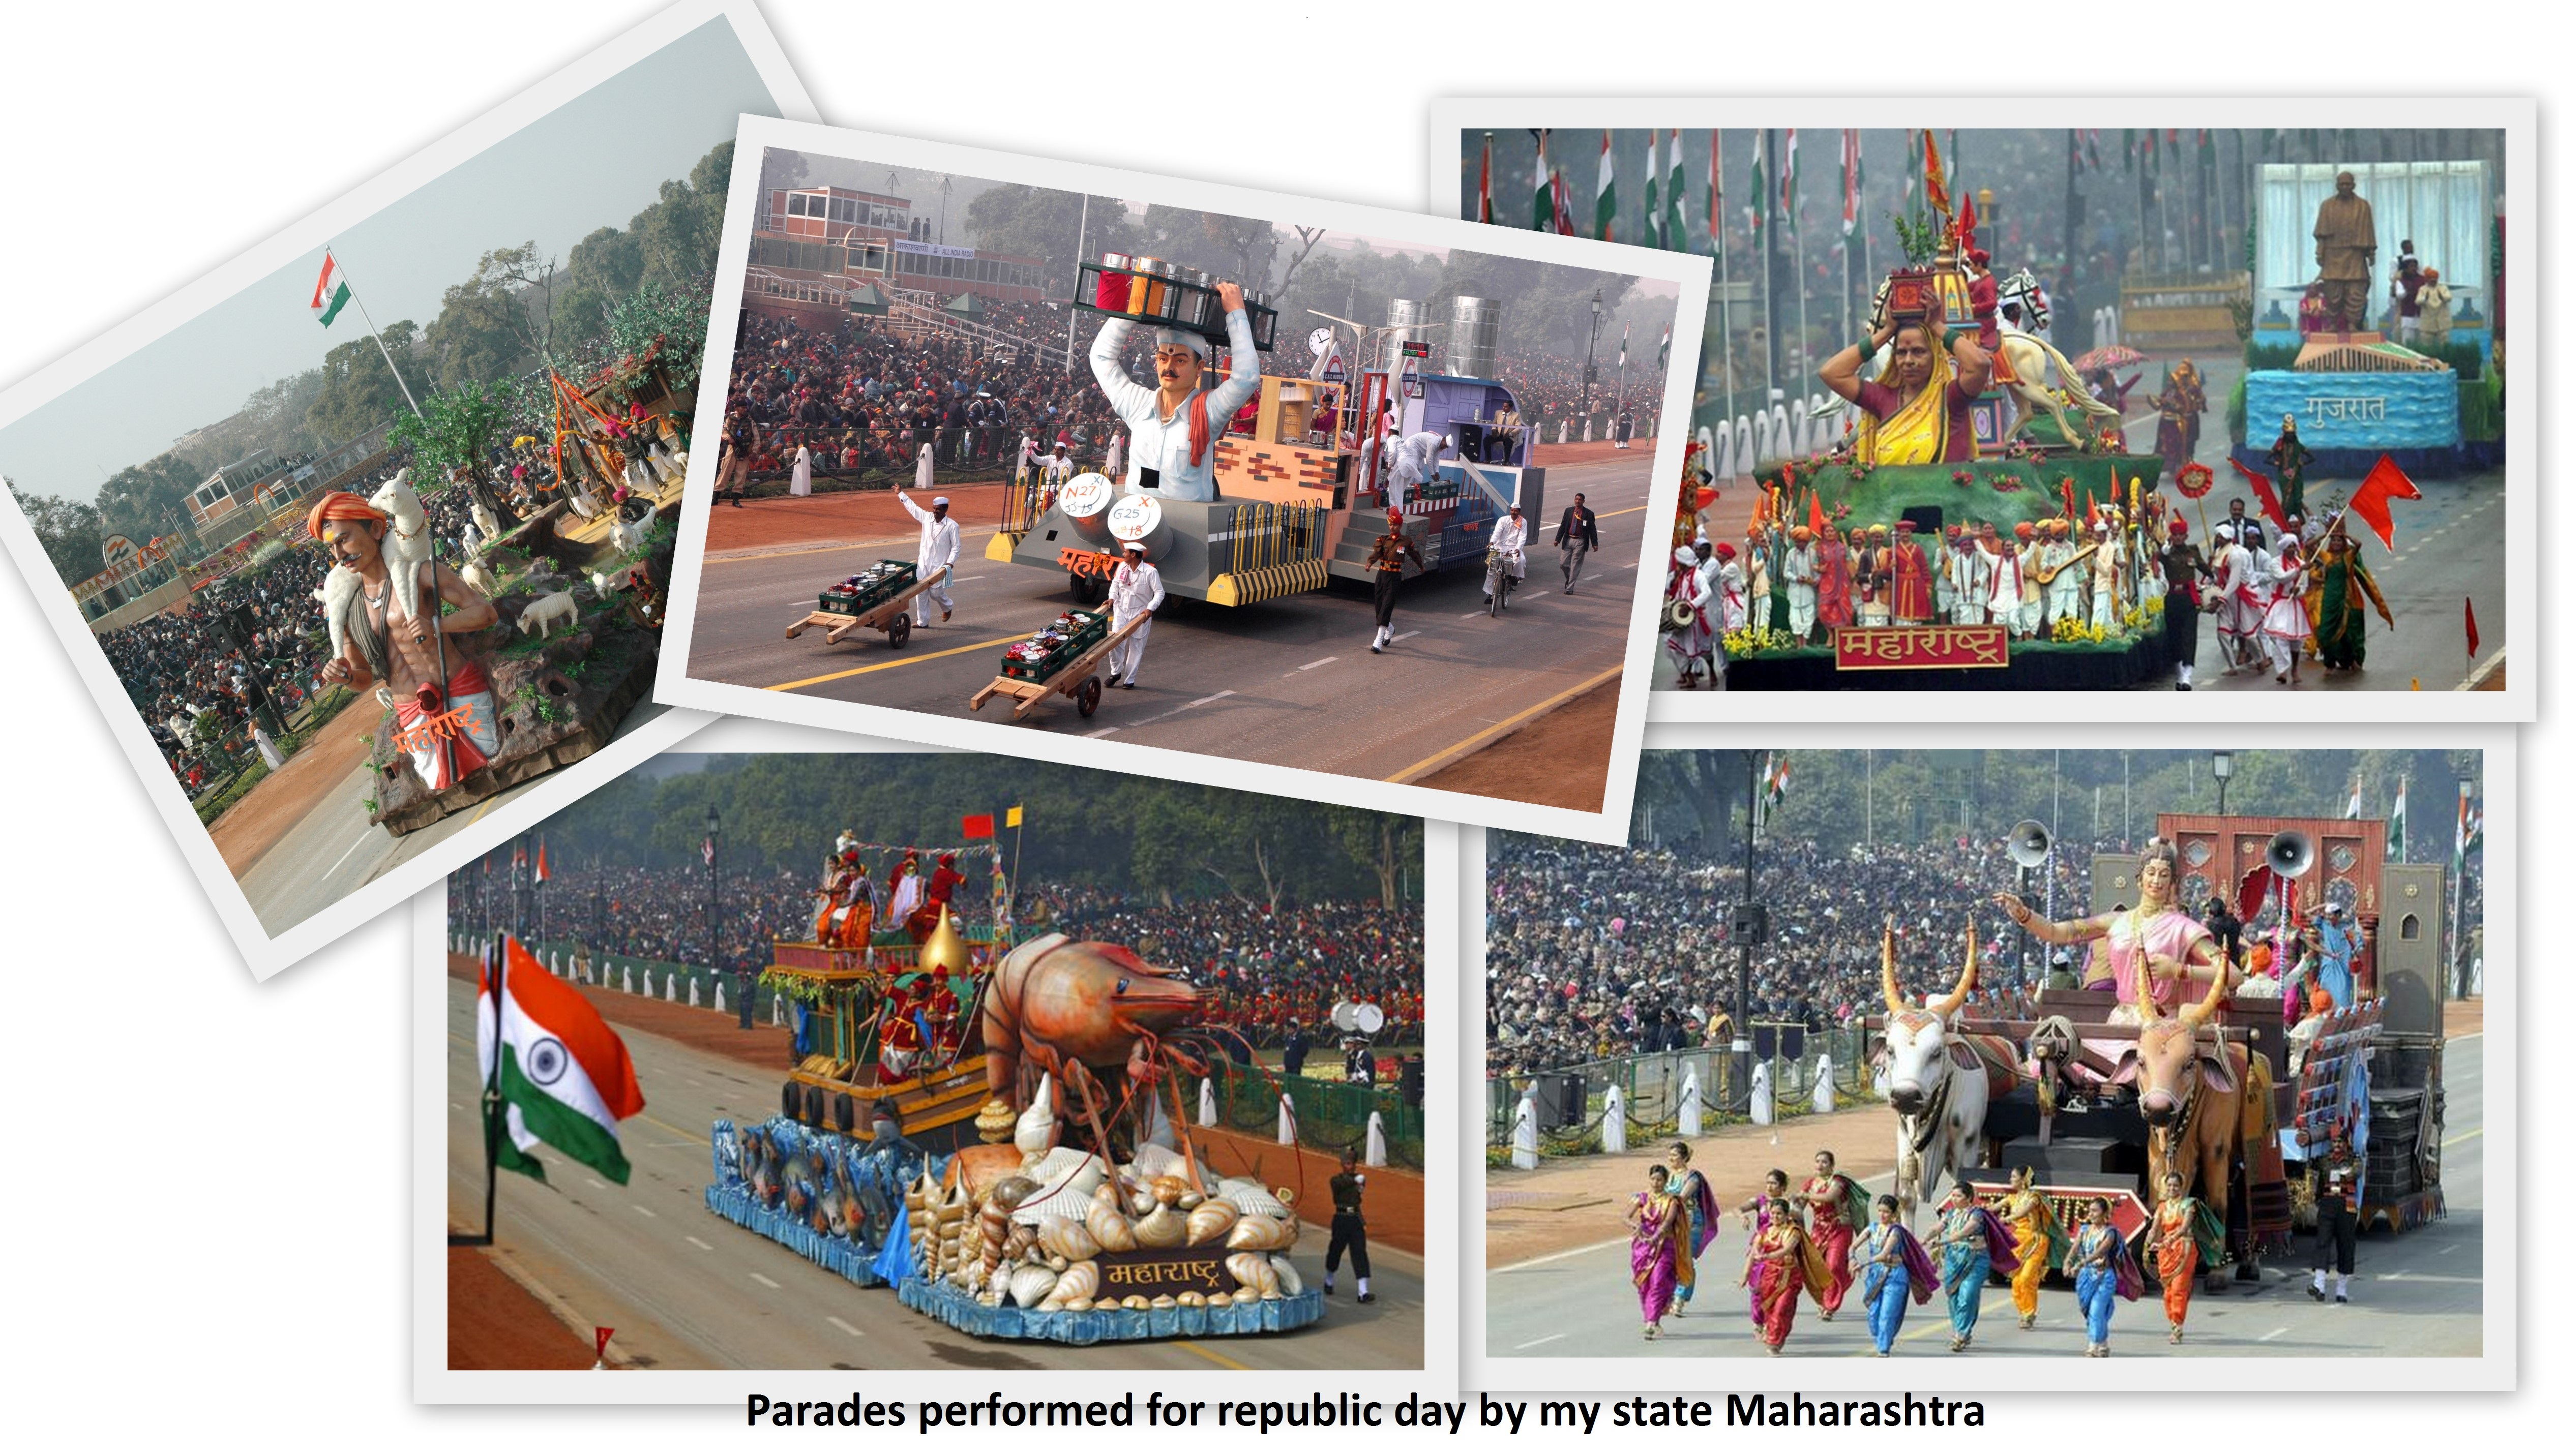 /wp-content/uploads/2015/02/republicday_642907.jpg